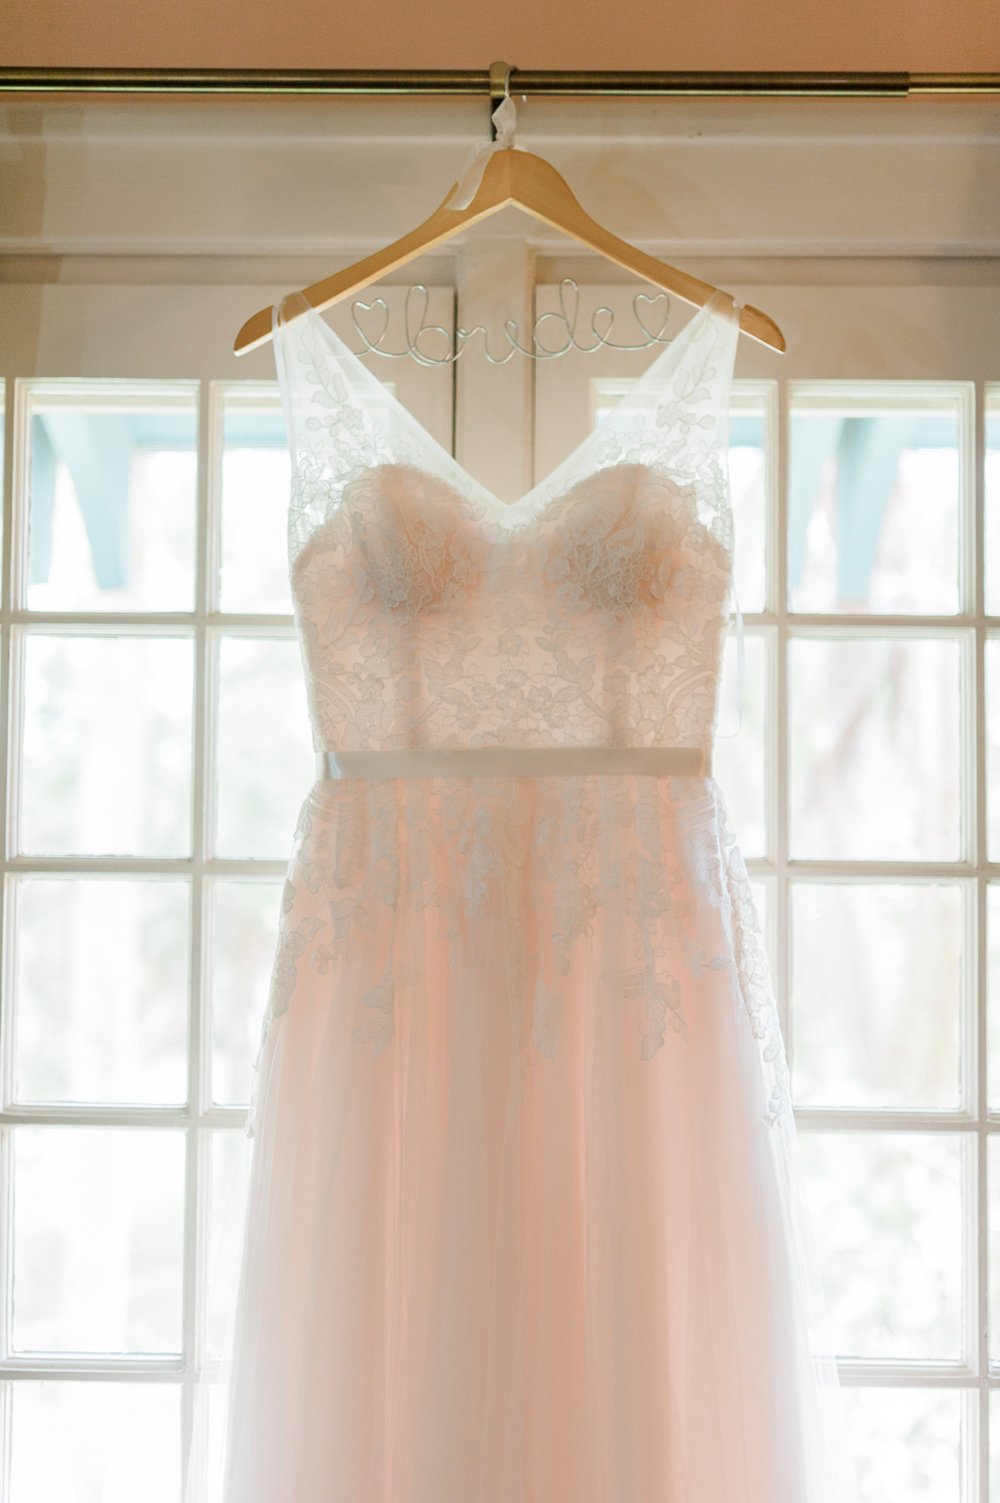 sydonie-mansion-mount-dora-orlando-fl-wedding-photos-dress-gown